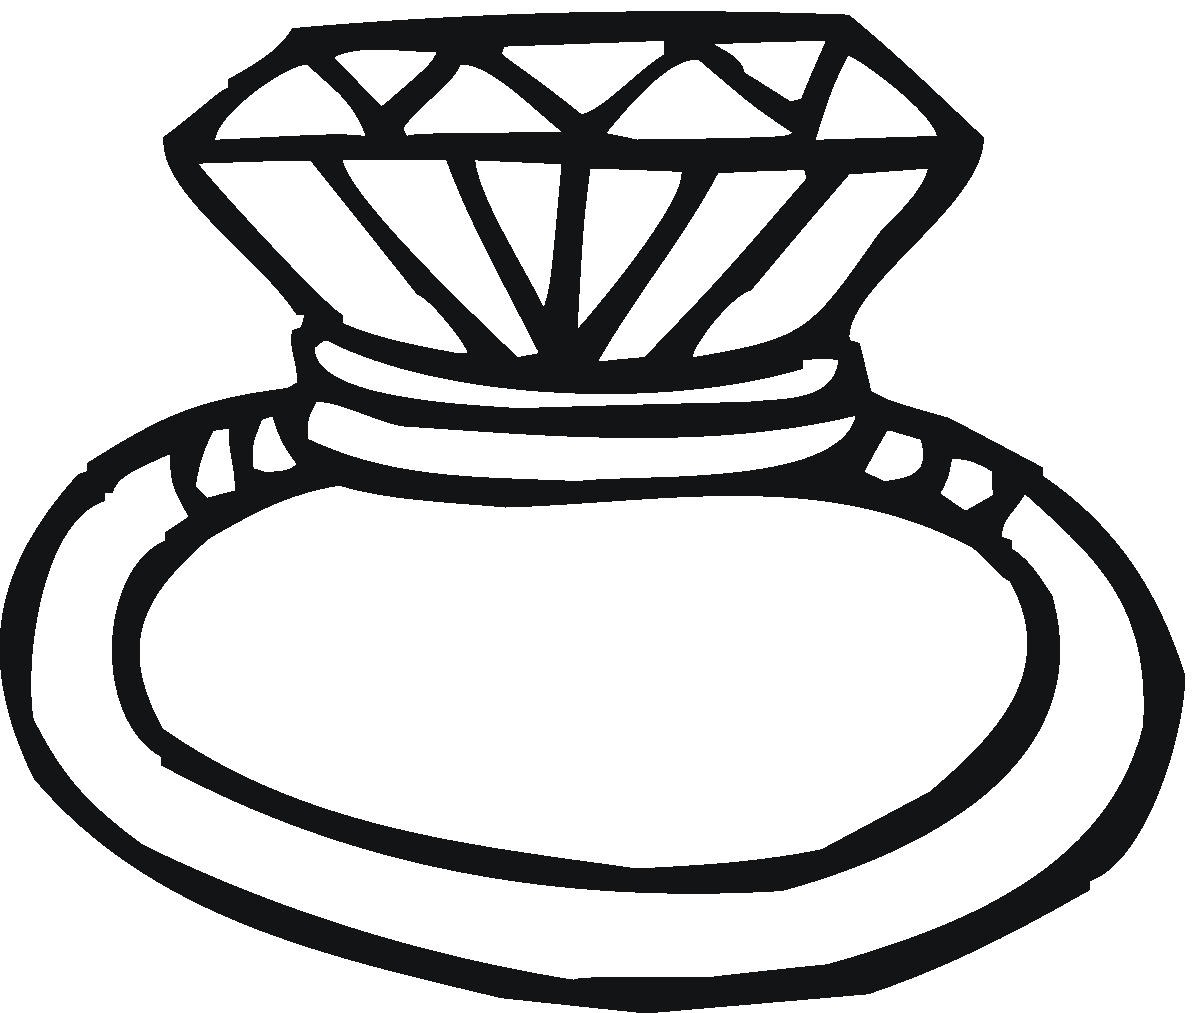 Ring clipart black and white wedding rings clip art